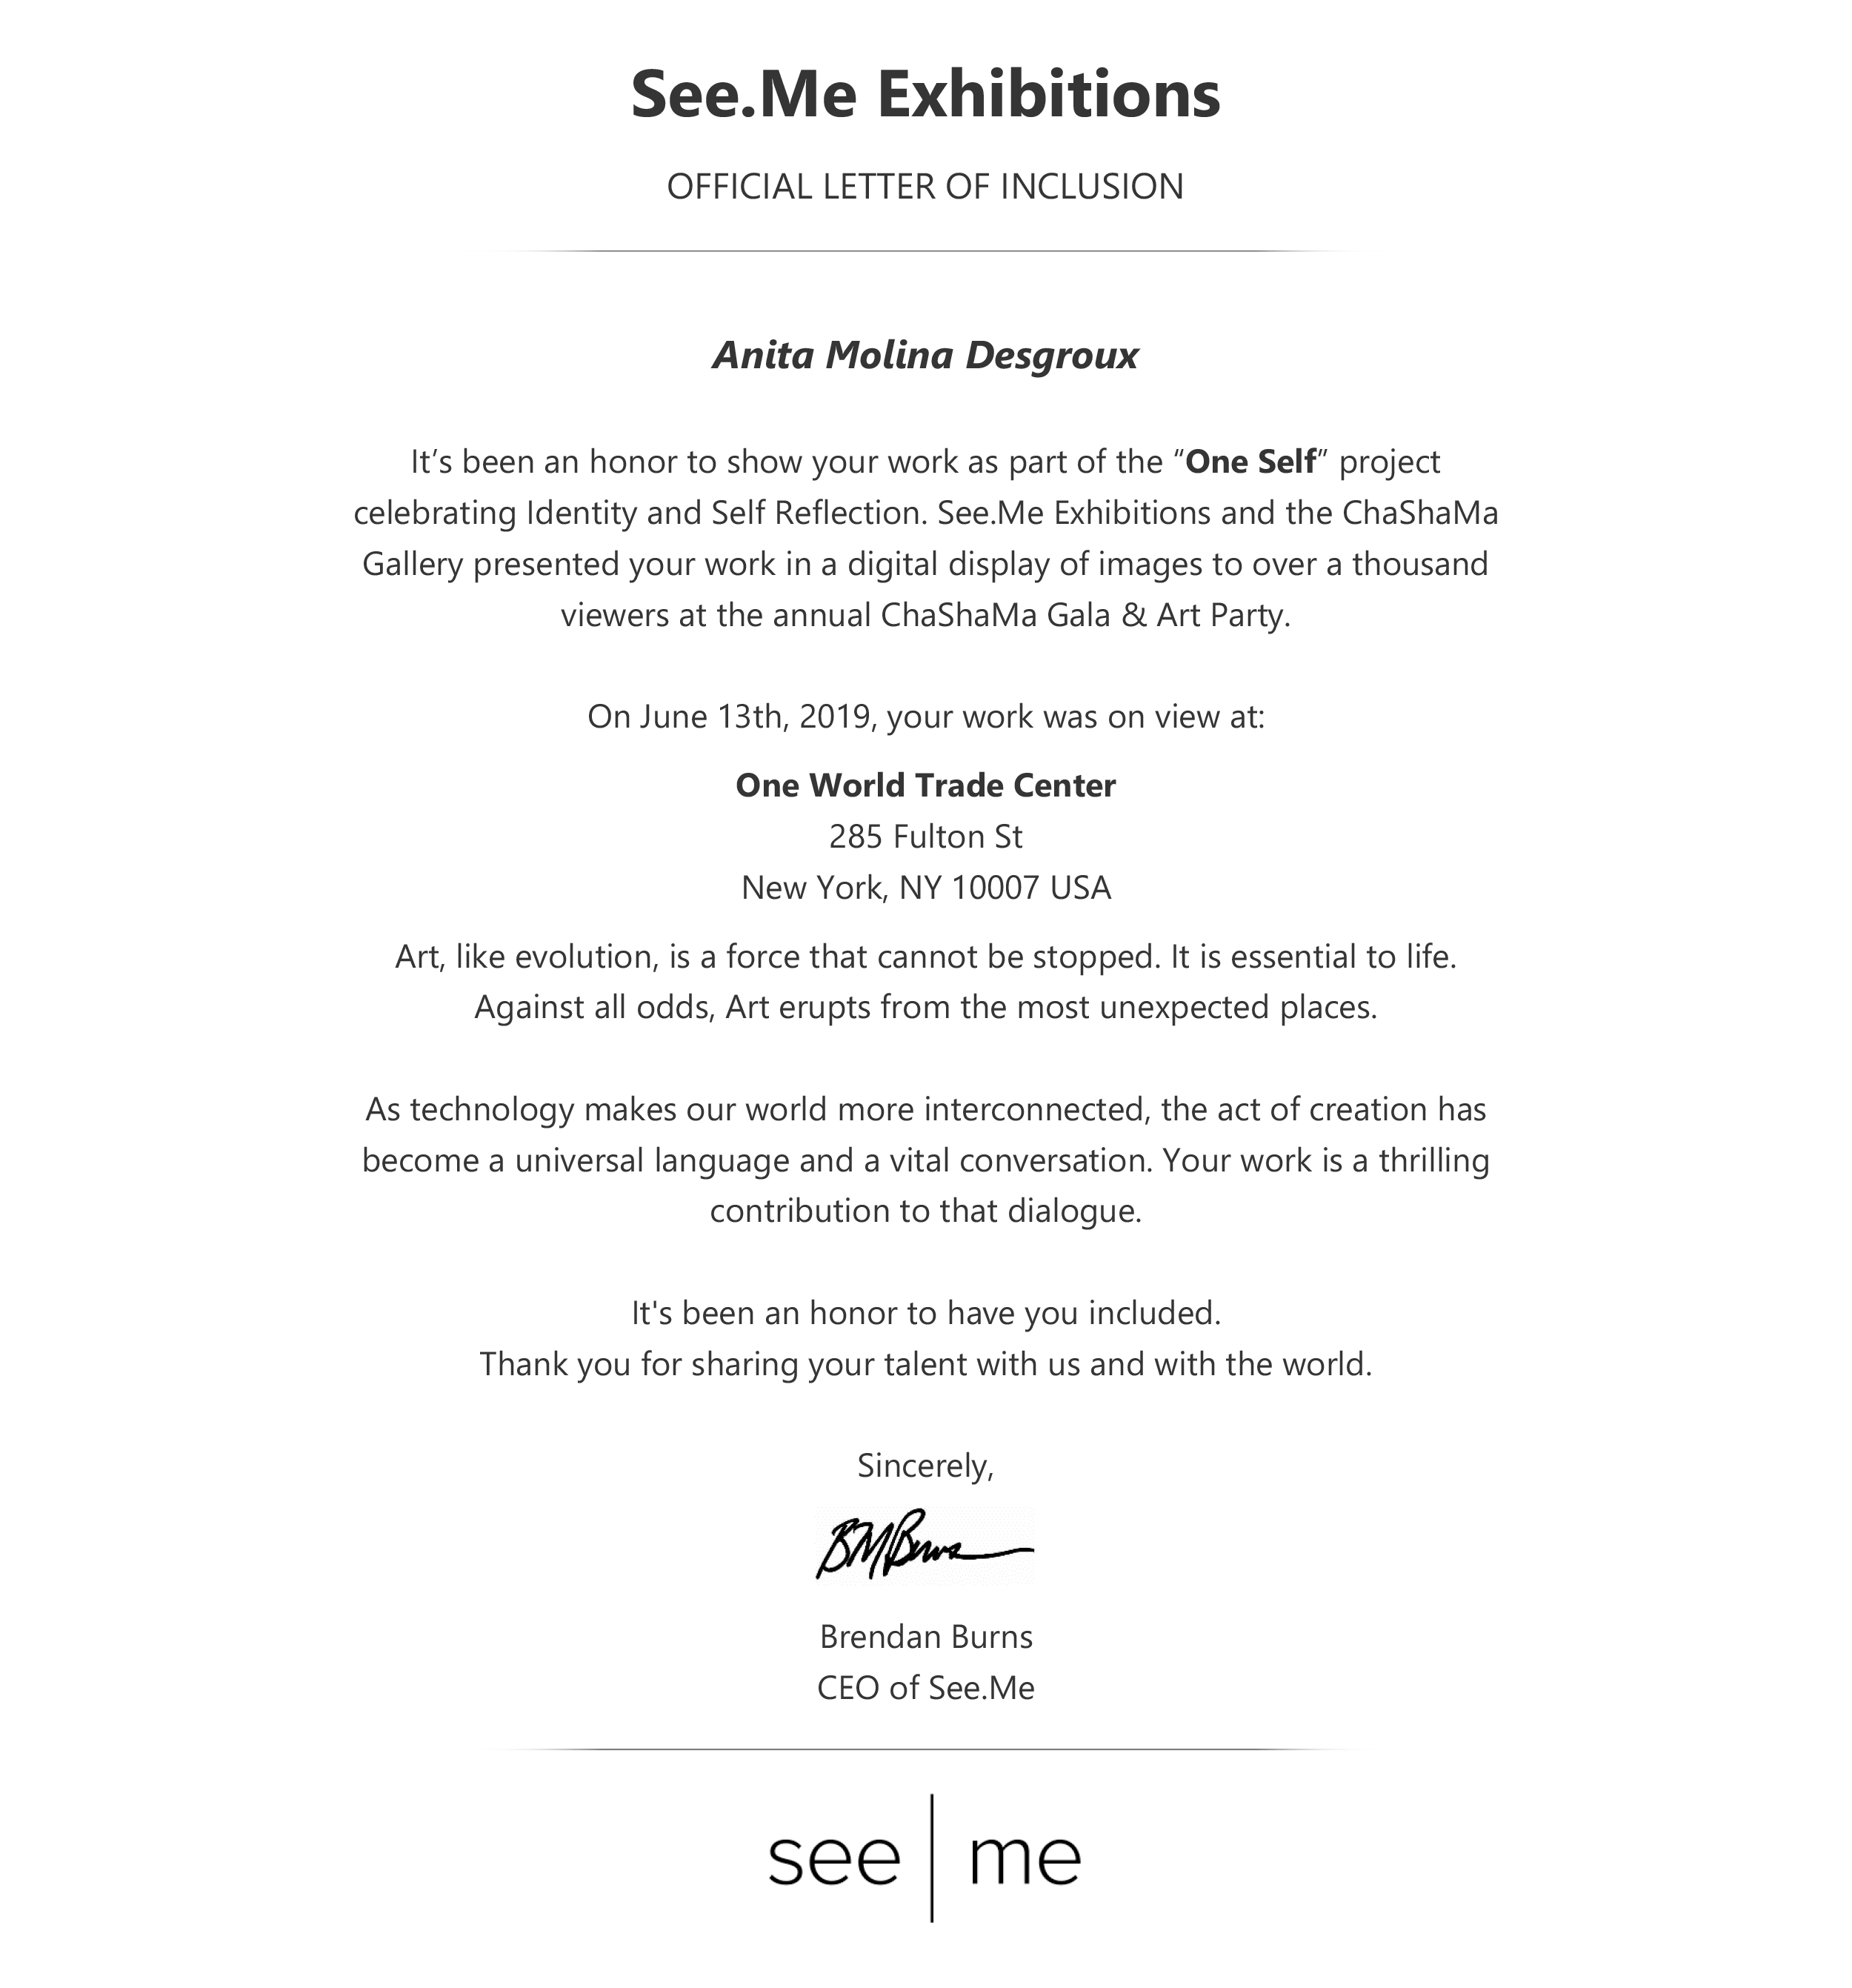 Anita Molina Desgroux_SeeMe One Self_Official Letter of Inclusion.png